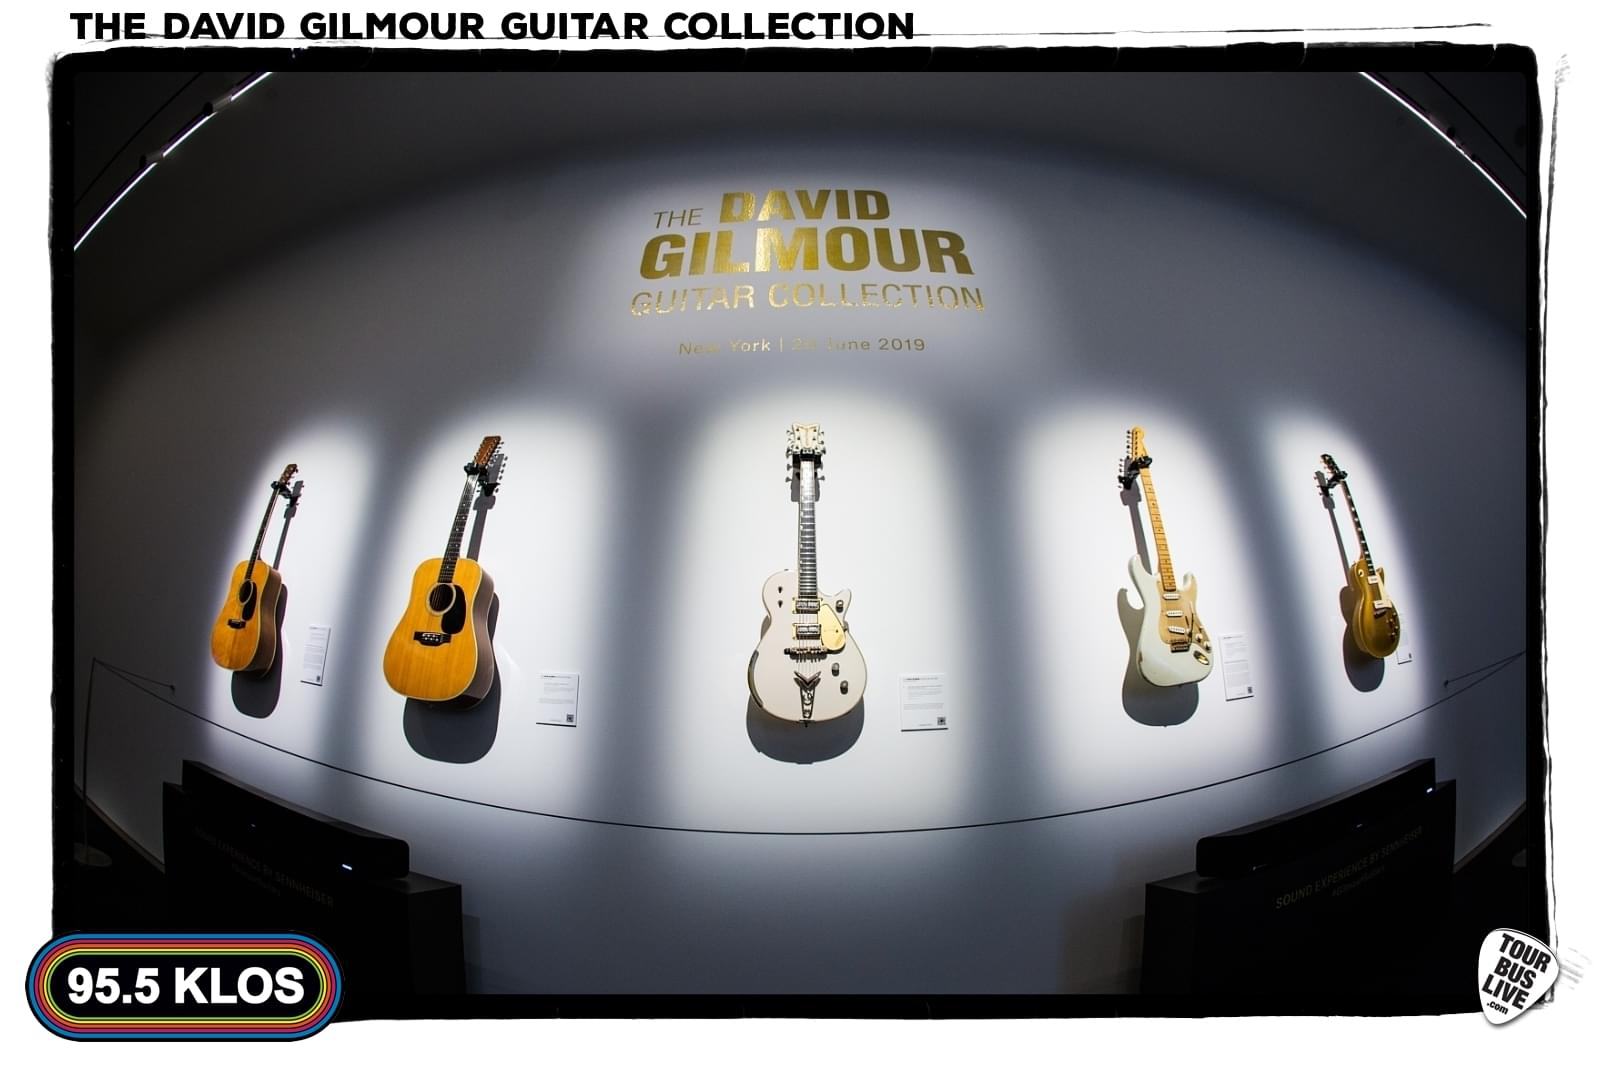 PHOTOS: David Gilmour Guitar Collection